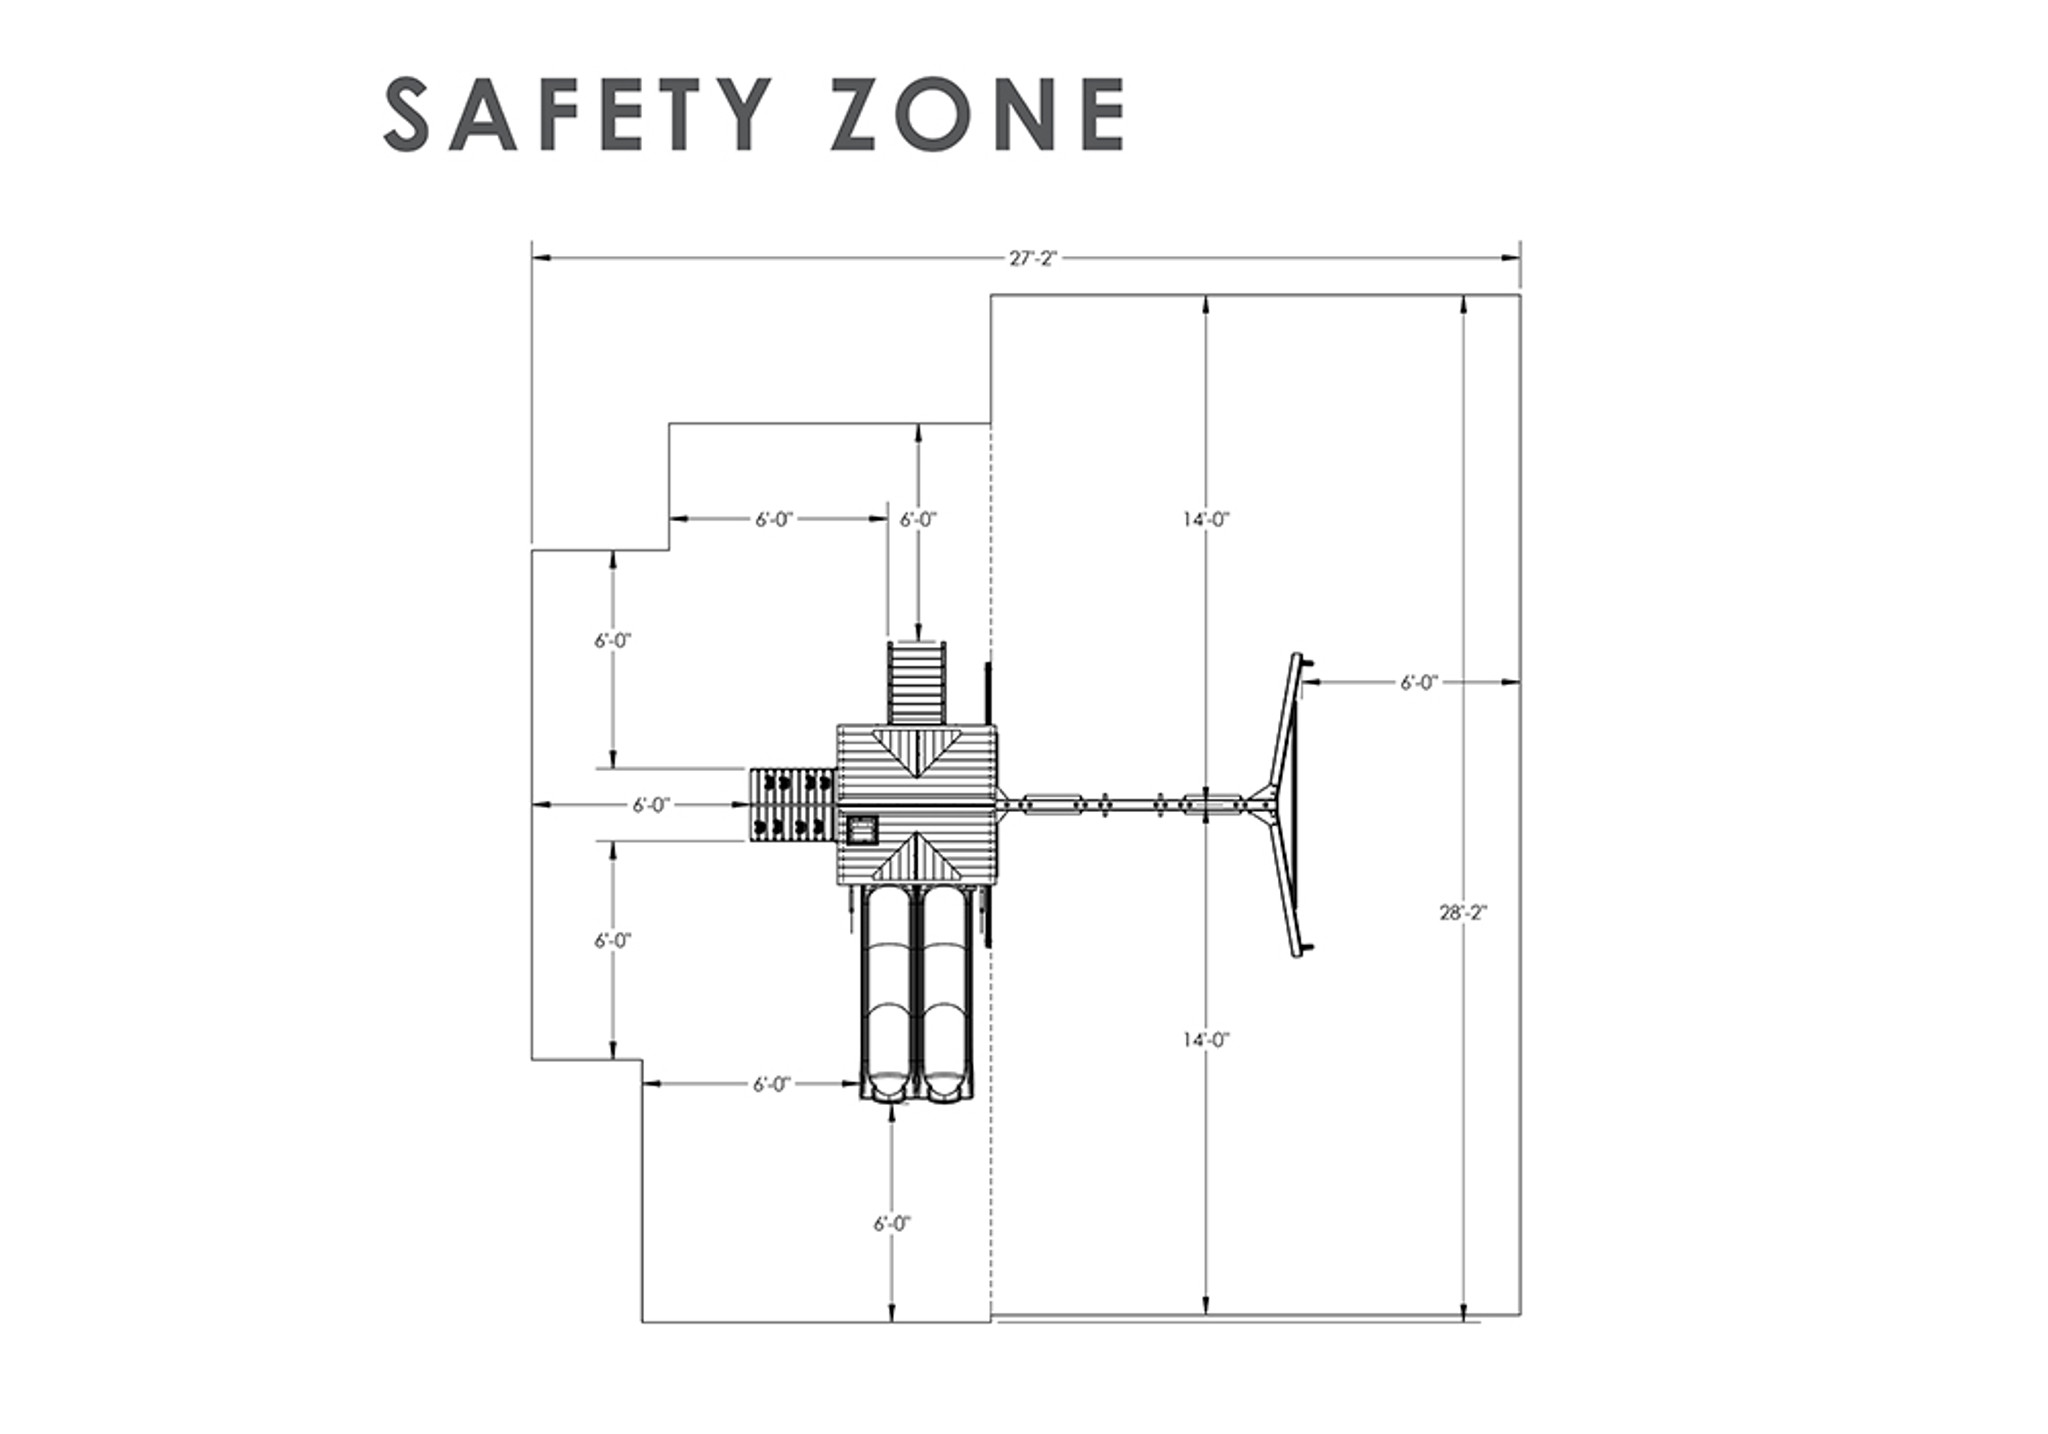 Safety Zone view of Cavalier II Play Set from Playnation